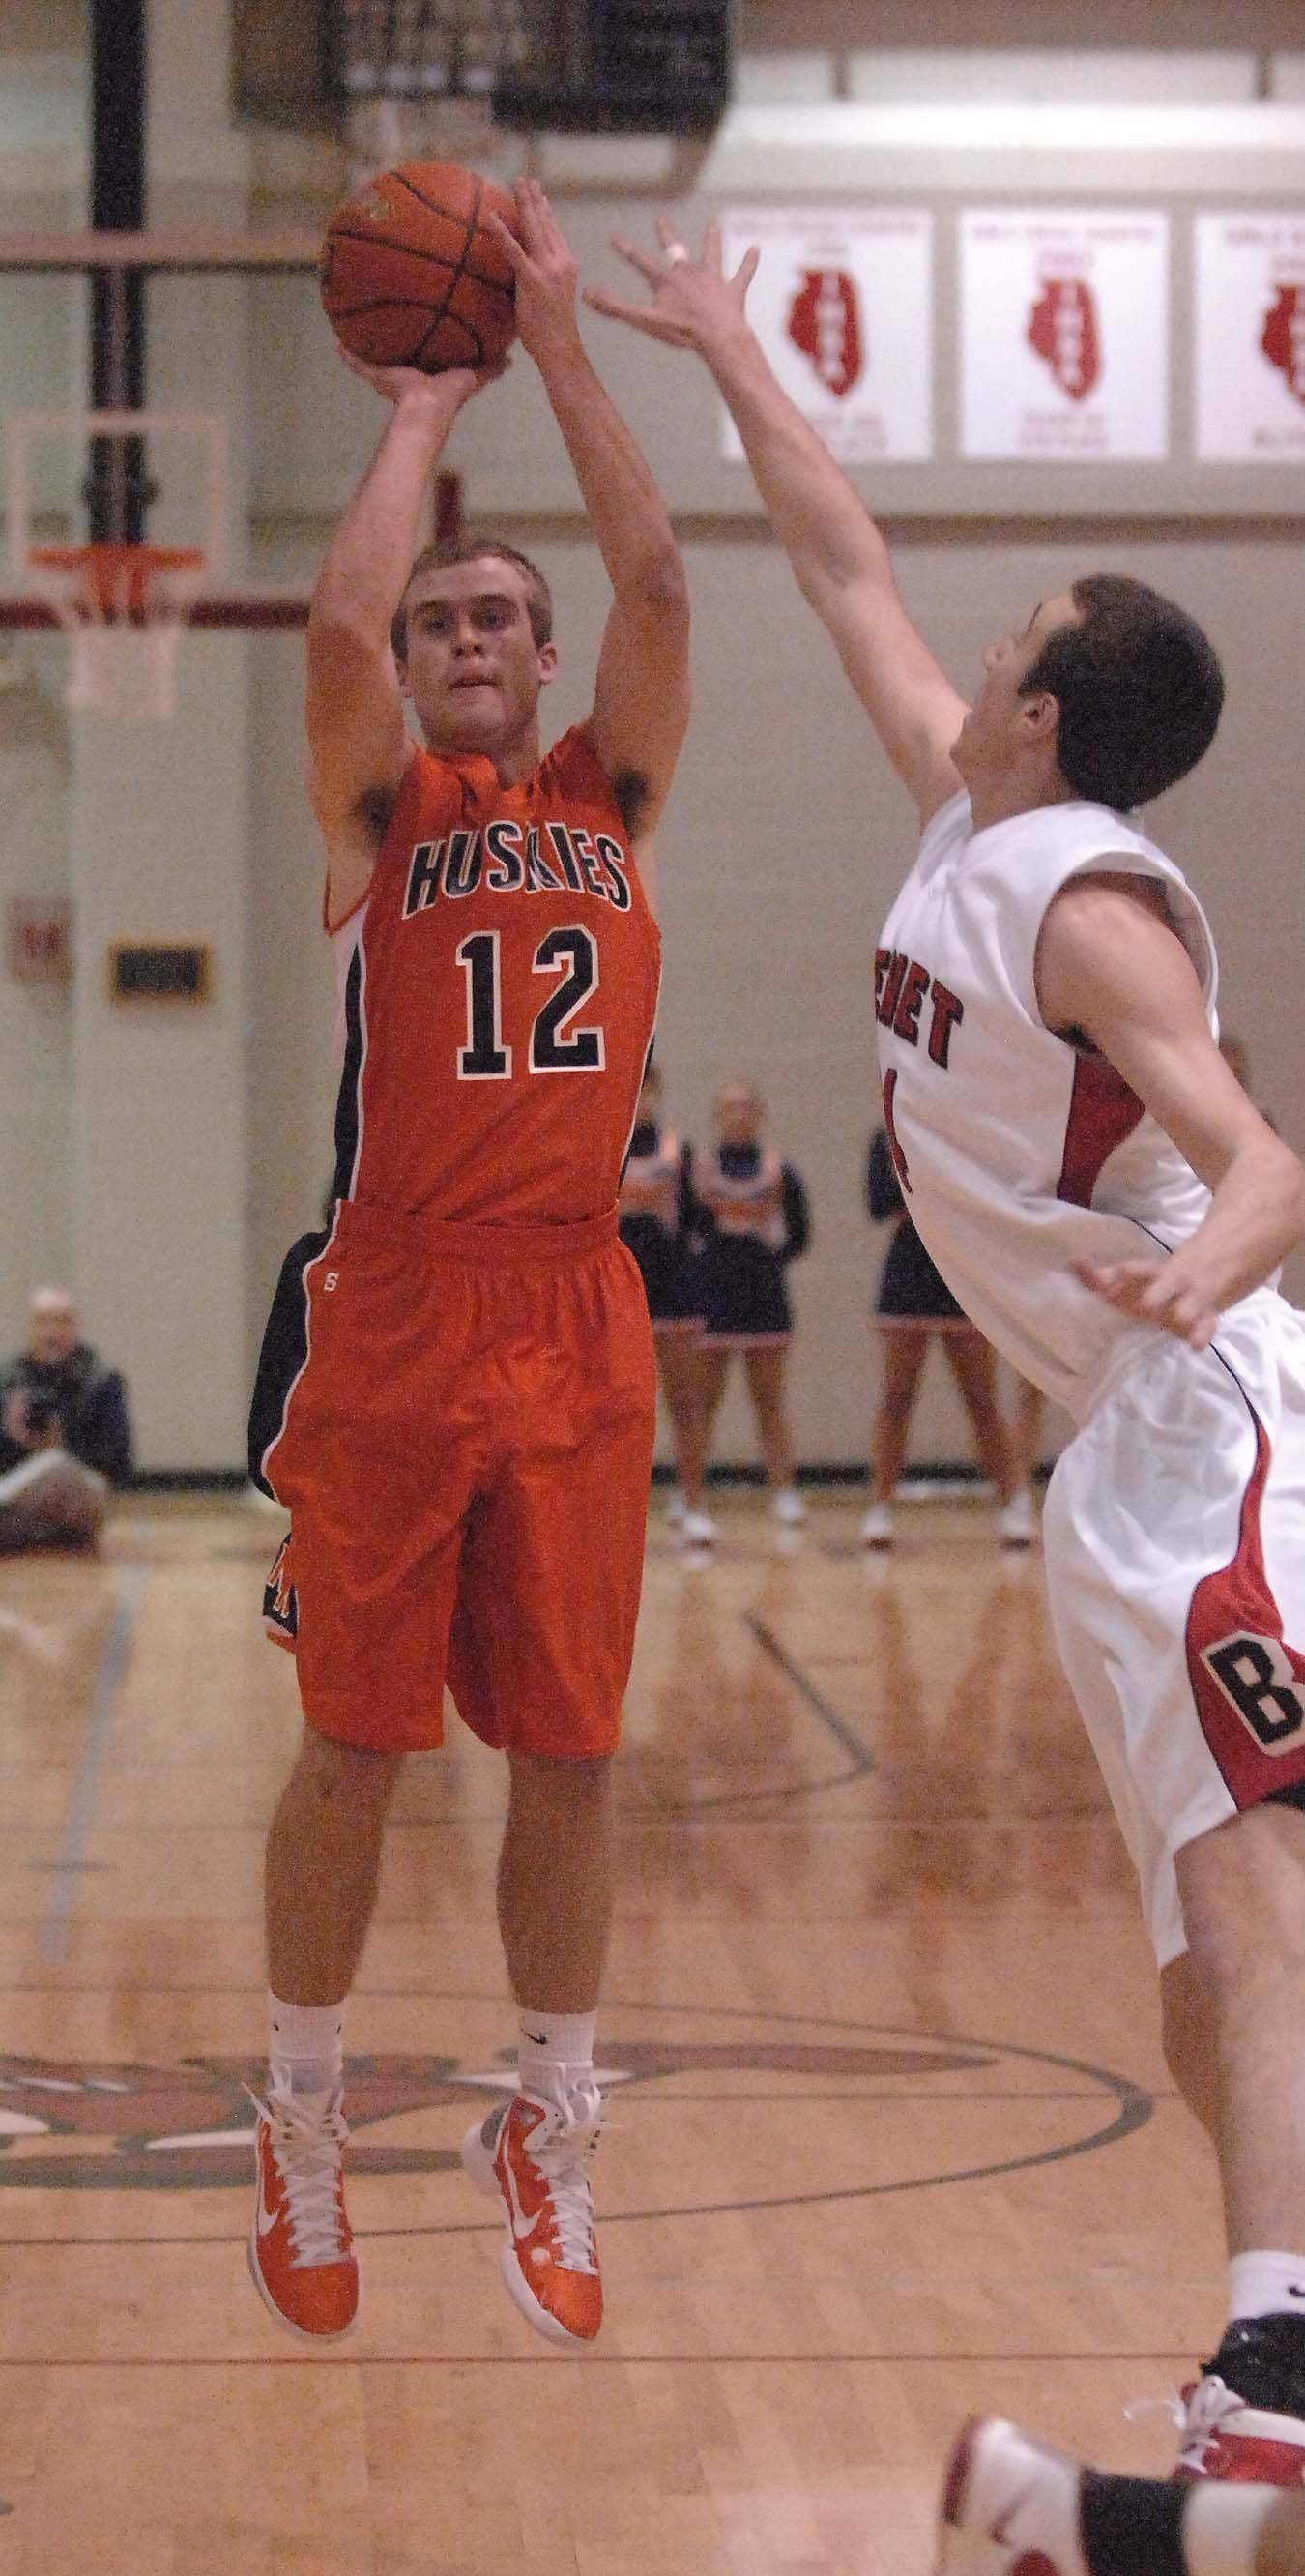 Nick Buege of Naperville North puts up a shot against Benet.